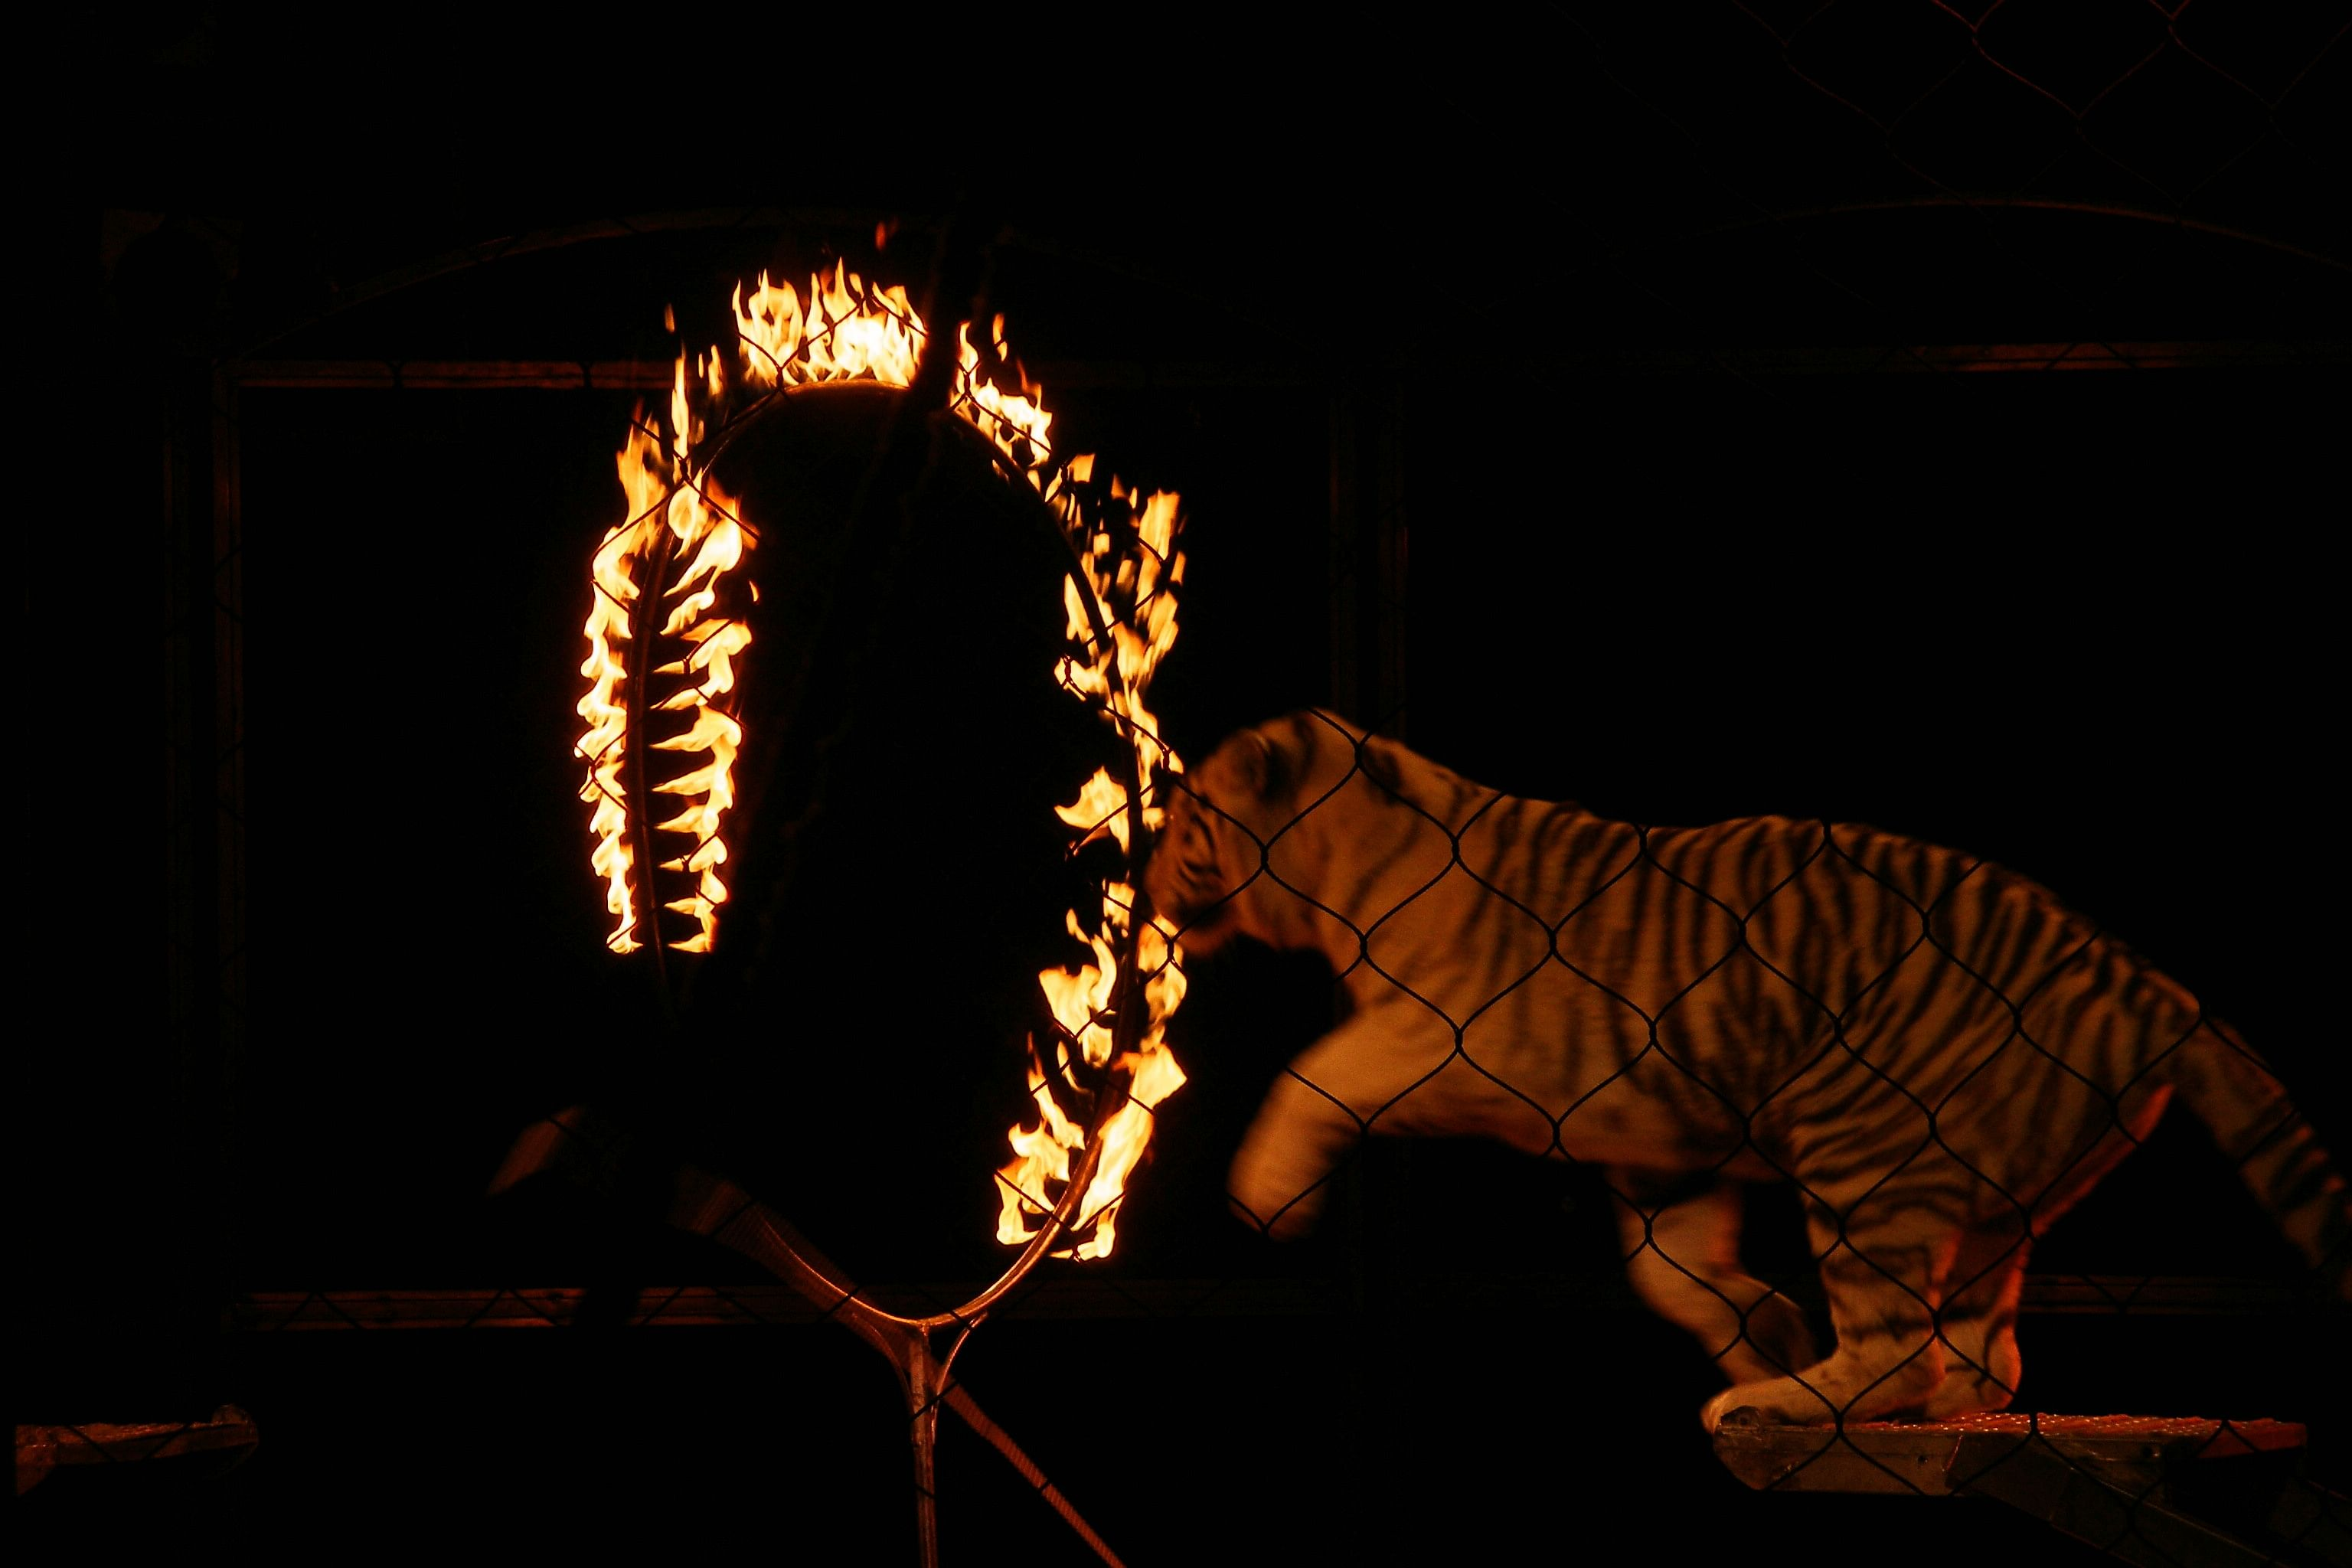 Keywords: CAPTIVE, stock, circus, tiger, performing, ring of fire, jumping through, wild animals in circuses, animal act, performance